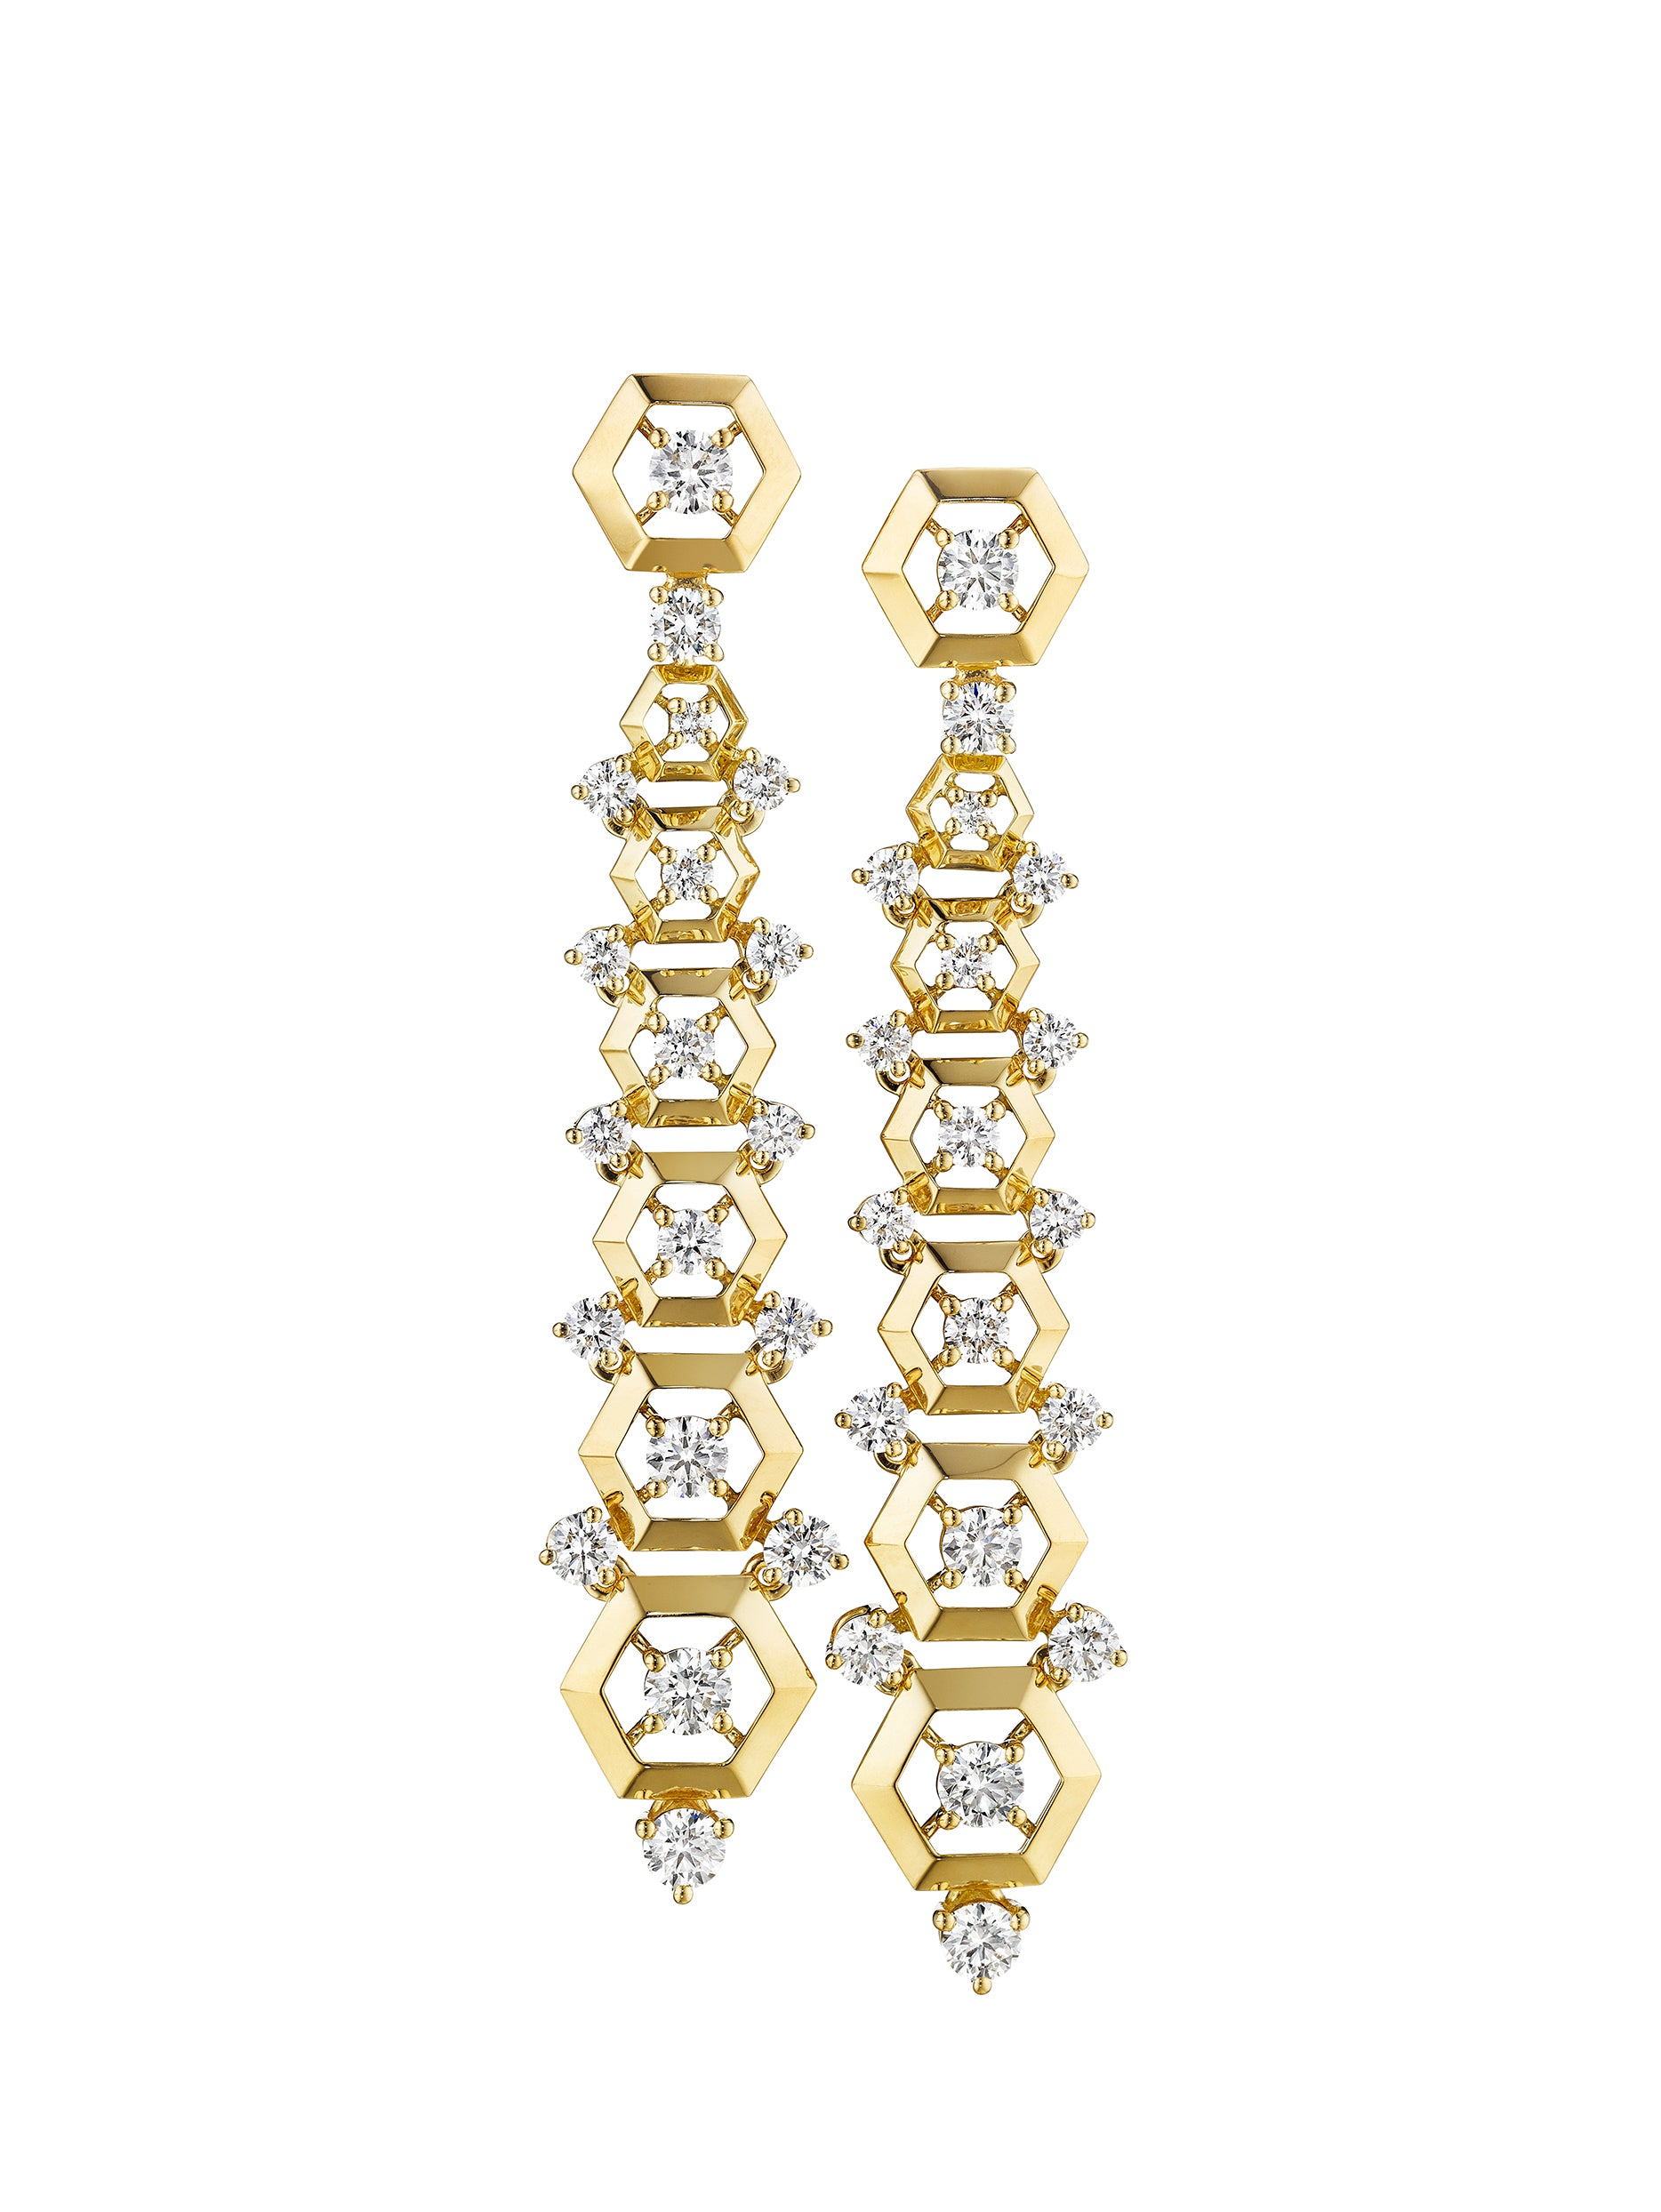 Hexagon Stiletto Earrings